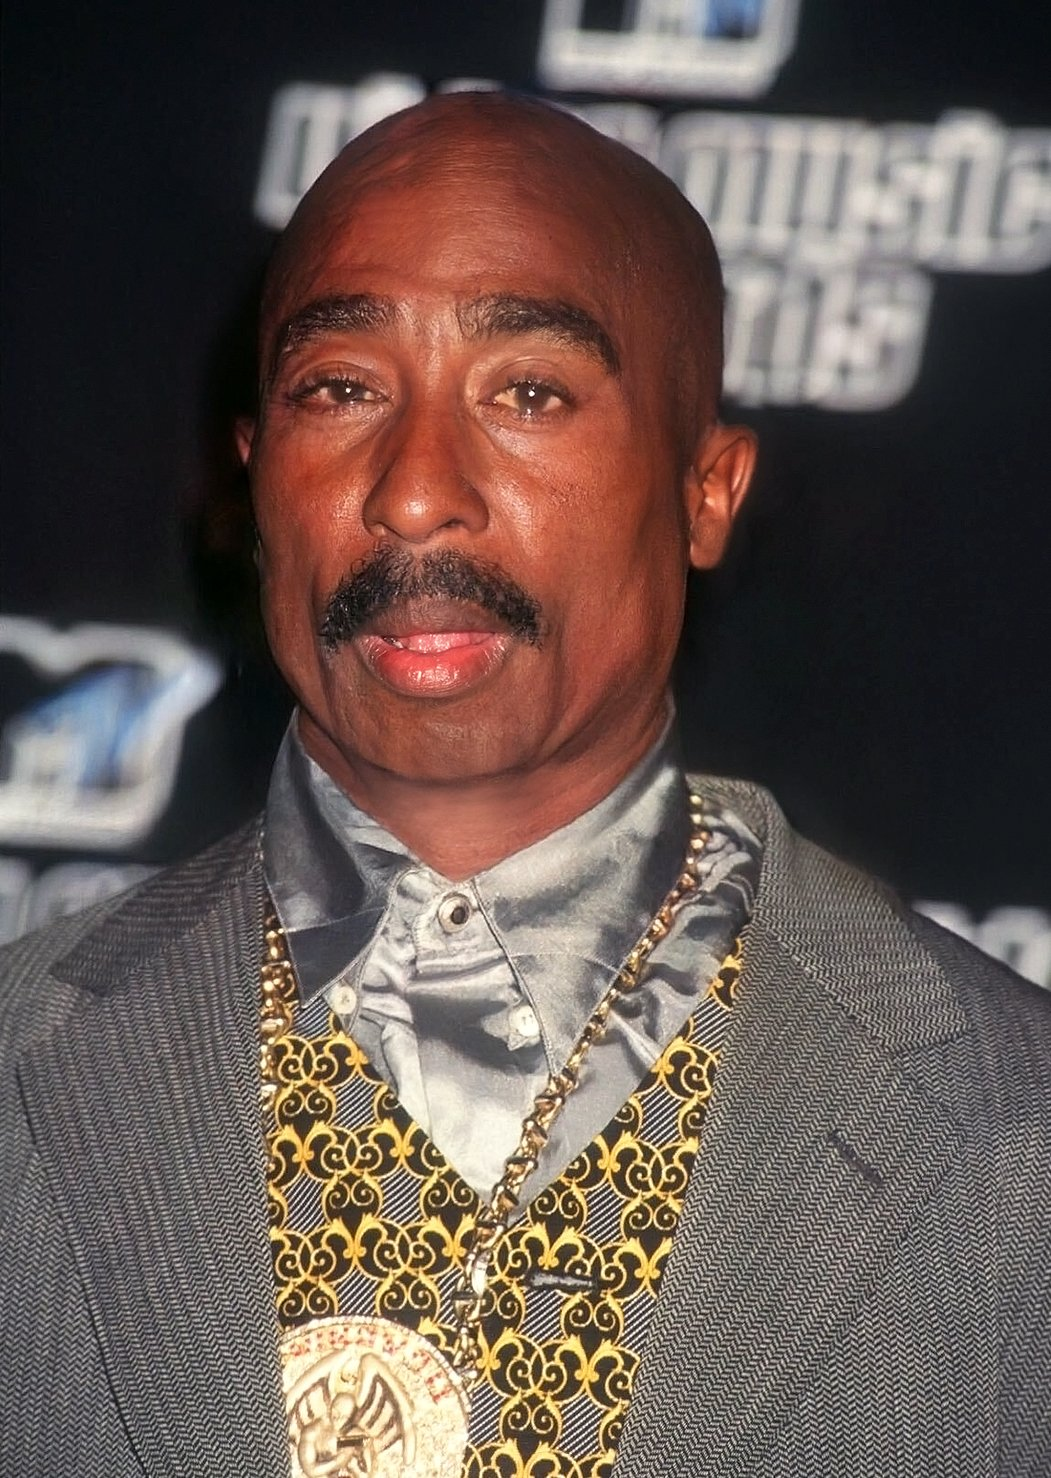 The older Tupac Shakur | Source: Getty Images